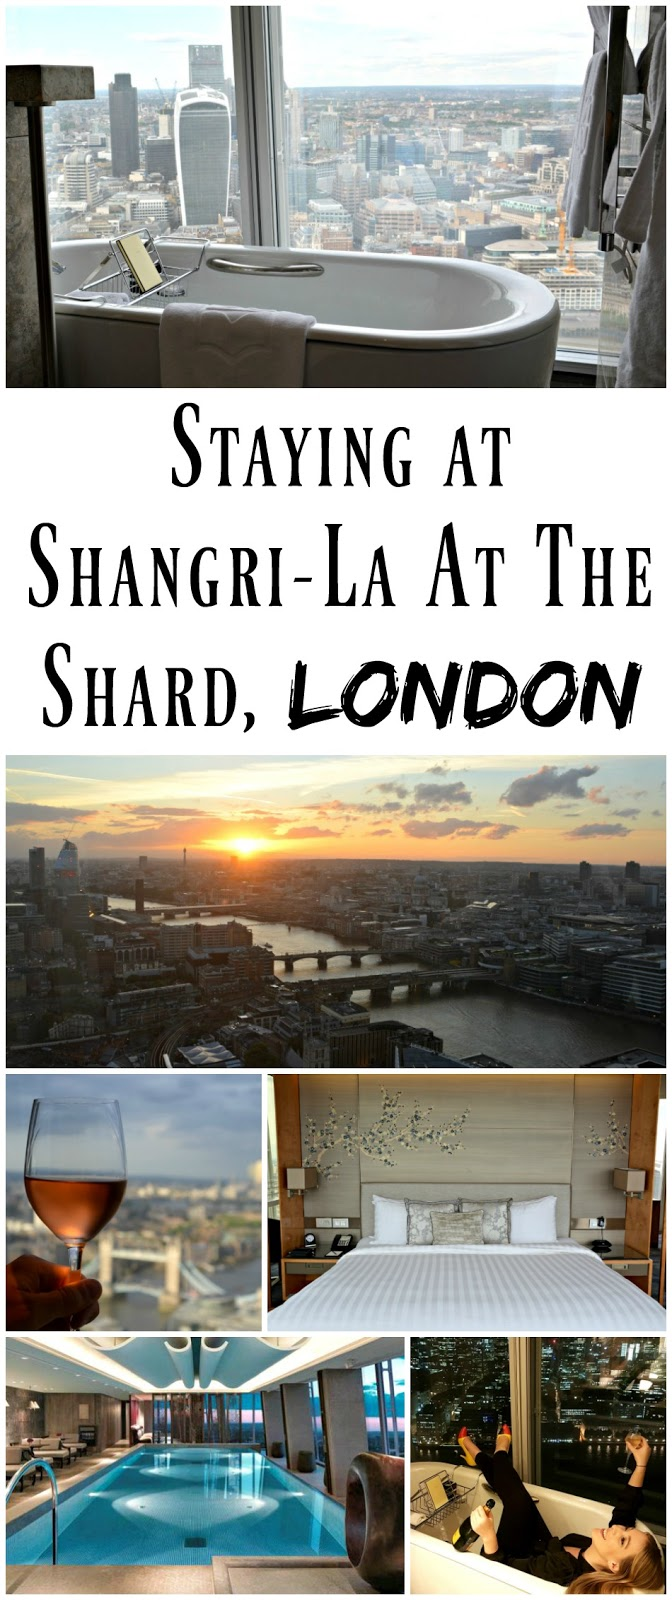 *PIN FOR LATER* A review of the luxury five star Shangri-La London At The Shard, London. The rooms have bathtubs overlooking London, and even a Skypool! Everywhere you go in the hotel has views for miles over London and the English Countryside, and I had the most incredible stay.